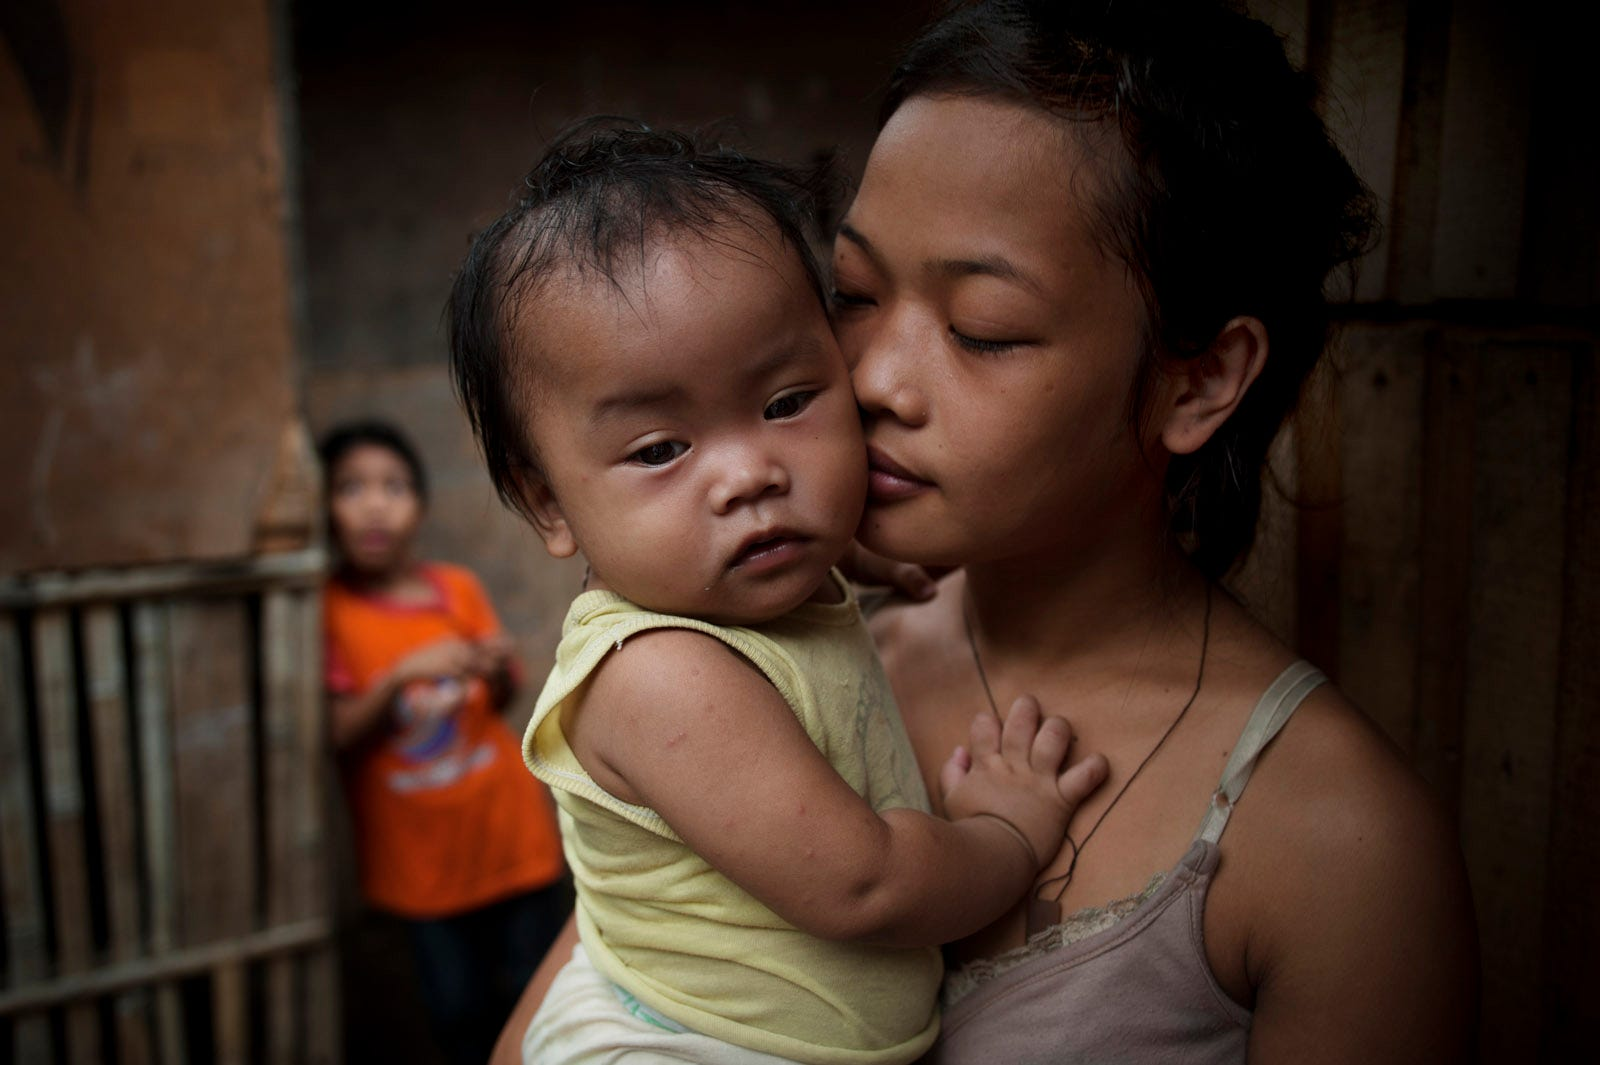 early pregnancy in the philippines In light of the said provision, it is disheartening to note that in the philippines the  incidence of teenage pregnancies is increasing in 2014, data from the.